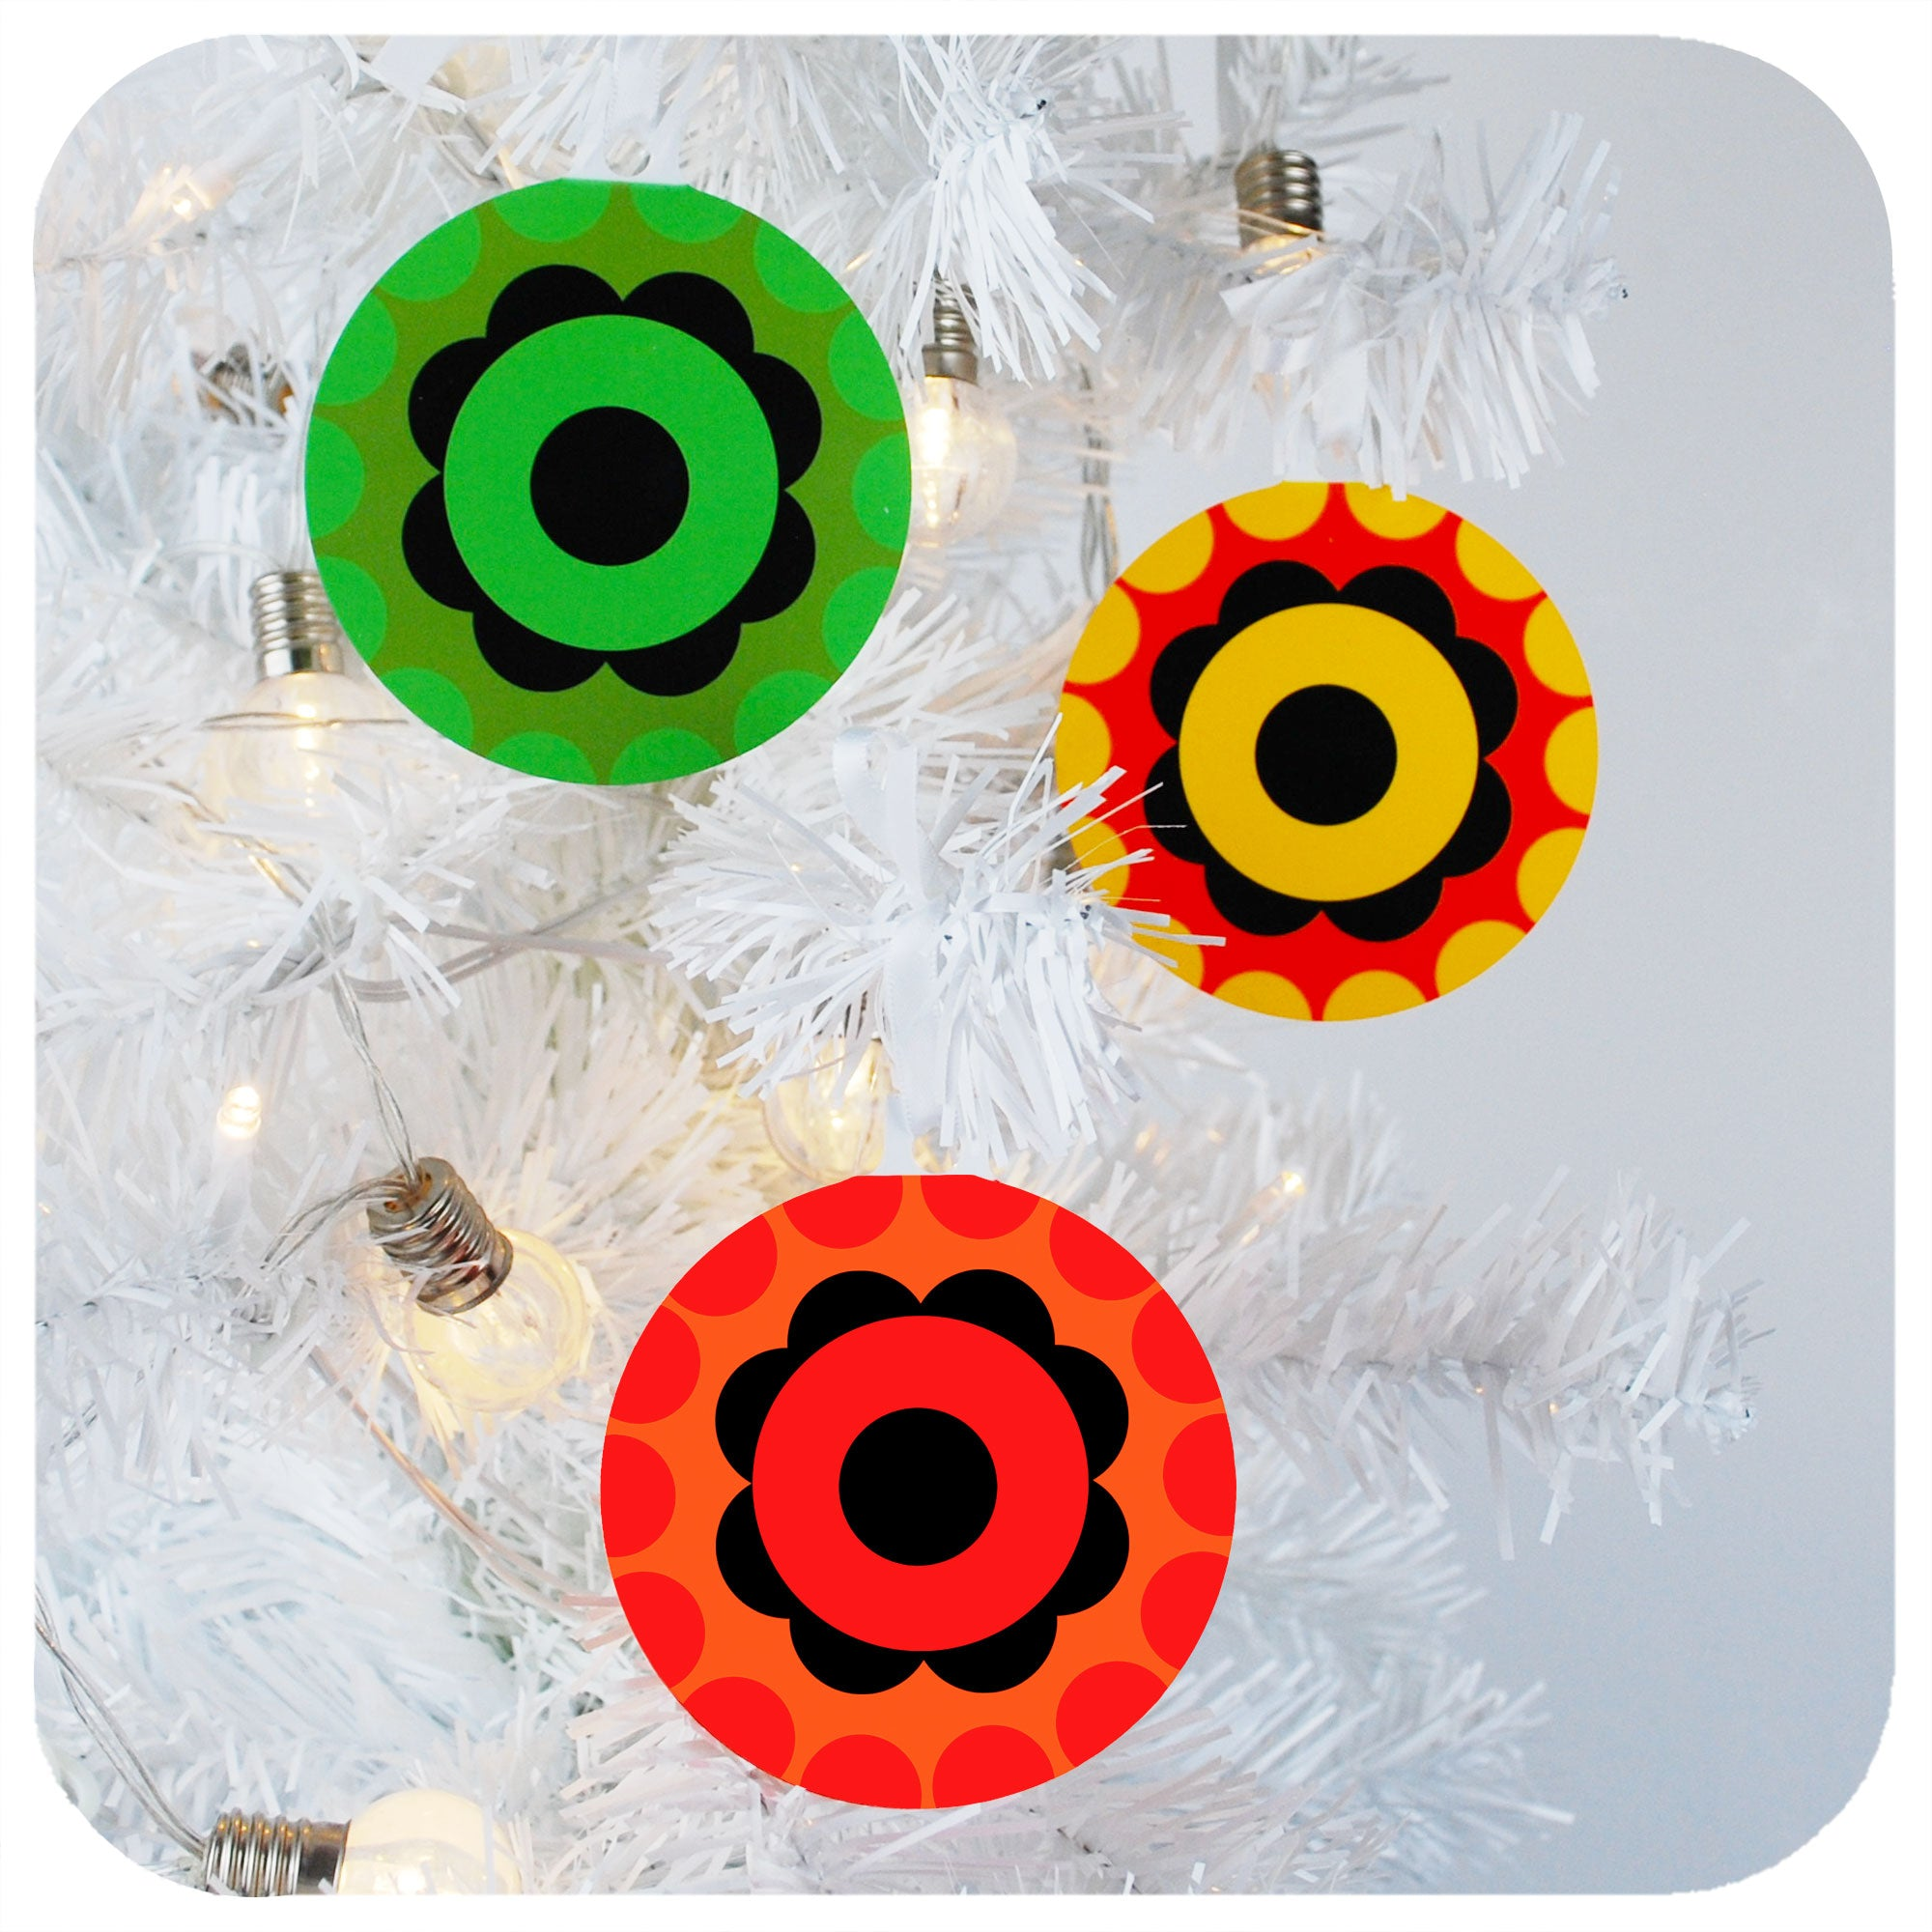 Three 70s style Christmas Tree Ornaments hanging in white Christmas tree | The Inkabilly Emporium